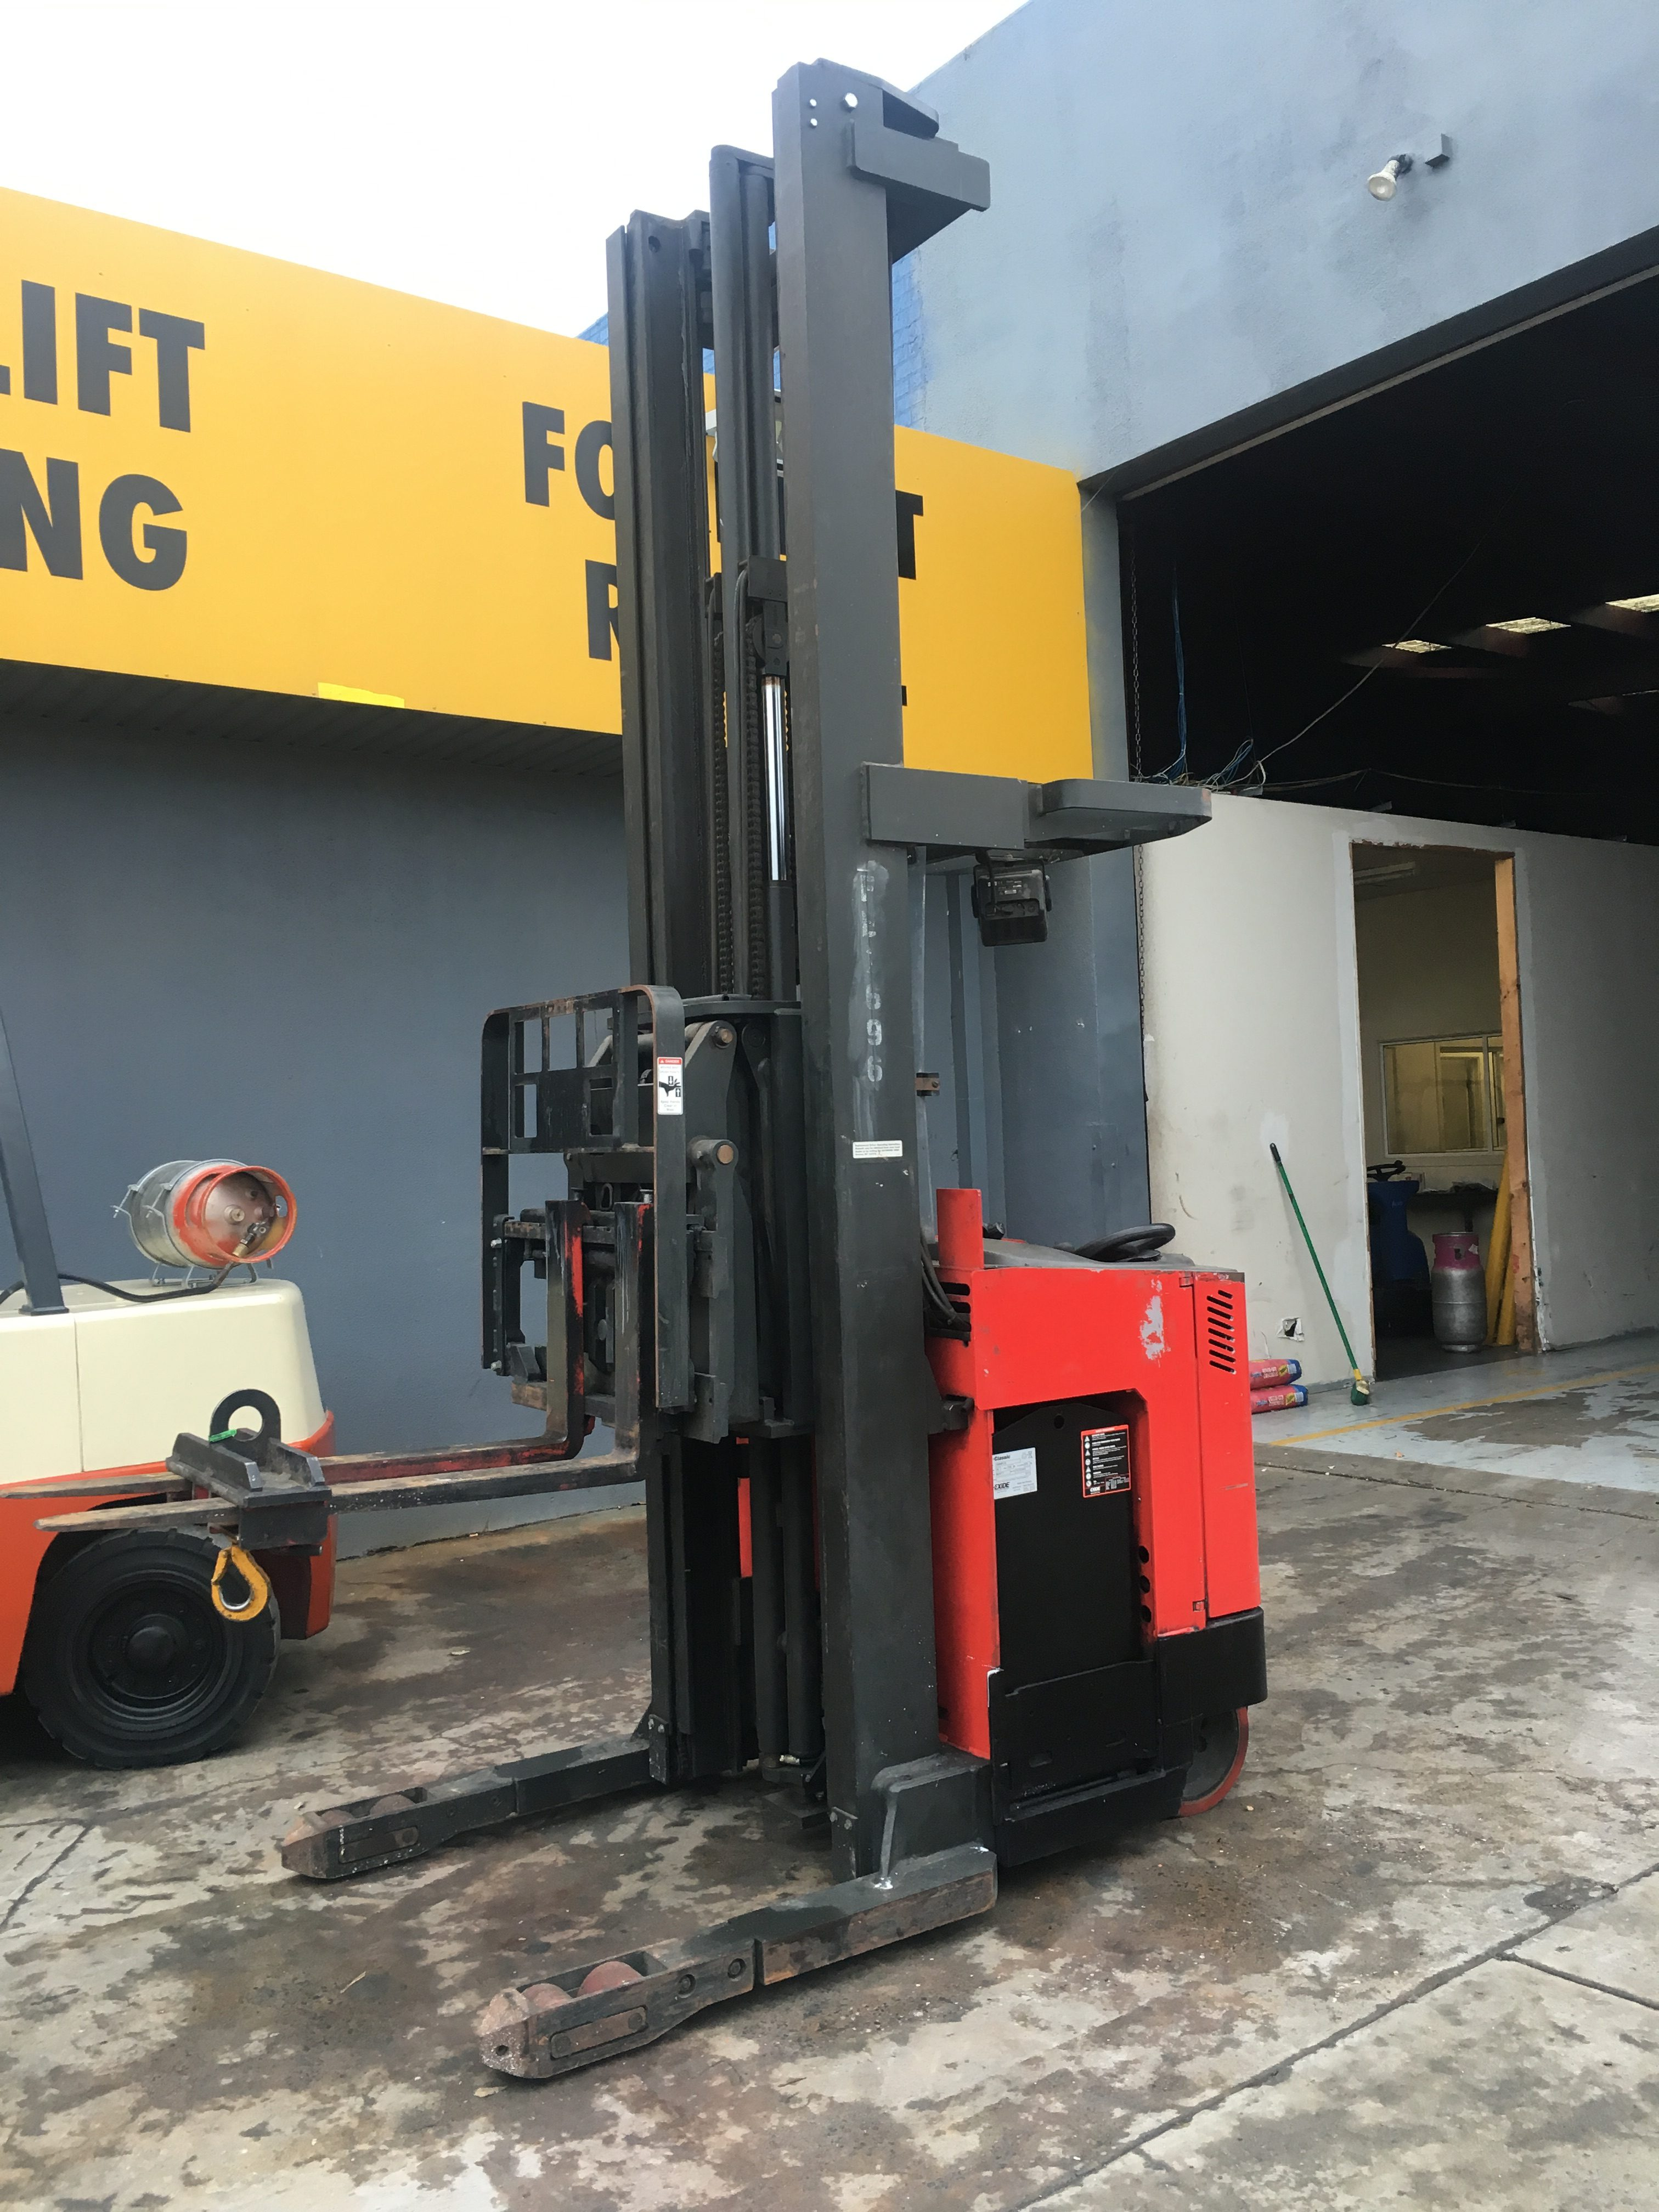 Reach trucks and order pickers | Used Forklifts For Sale in